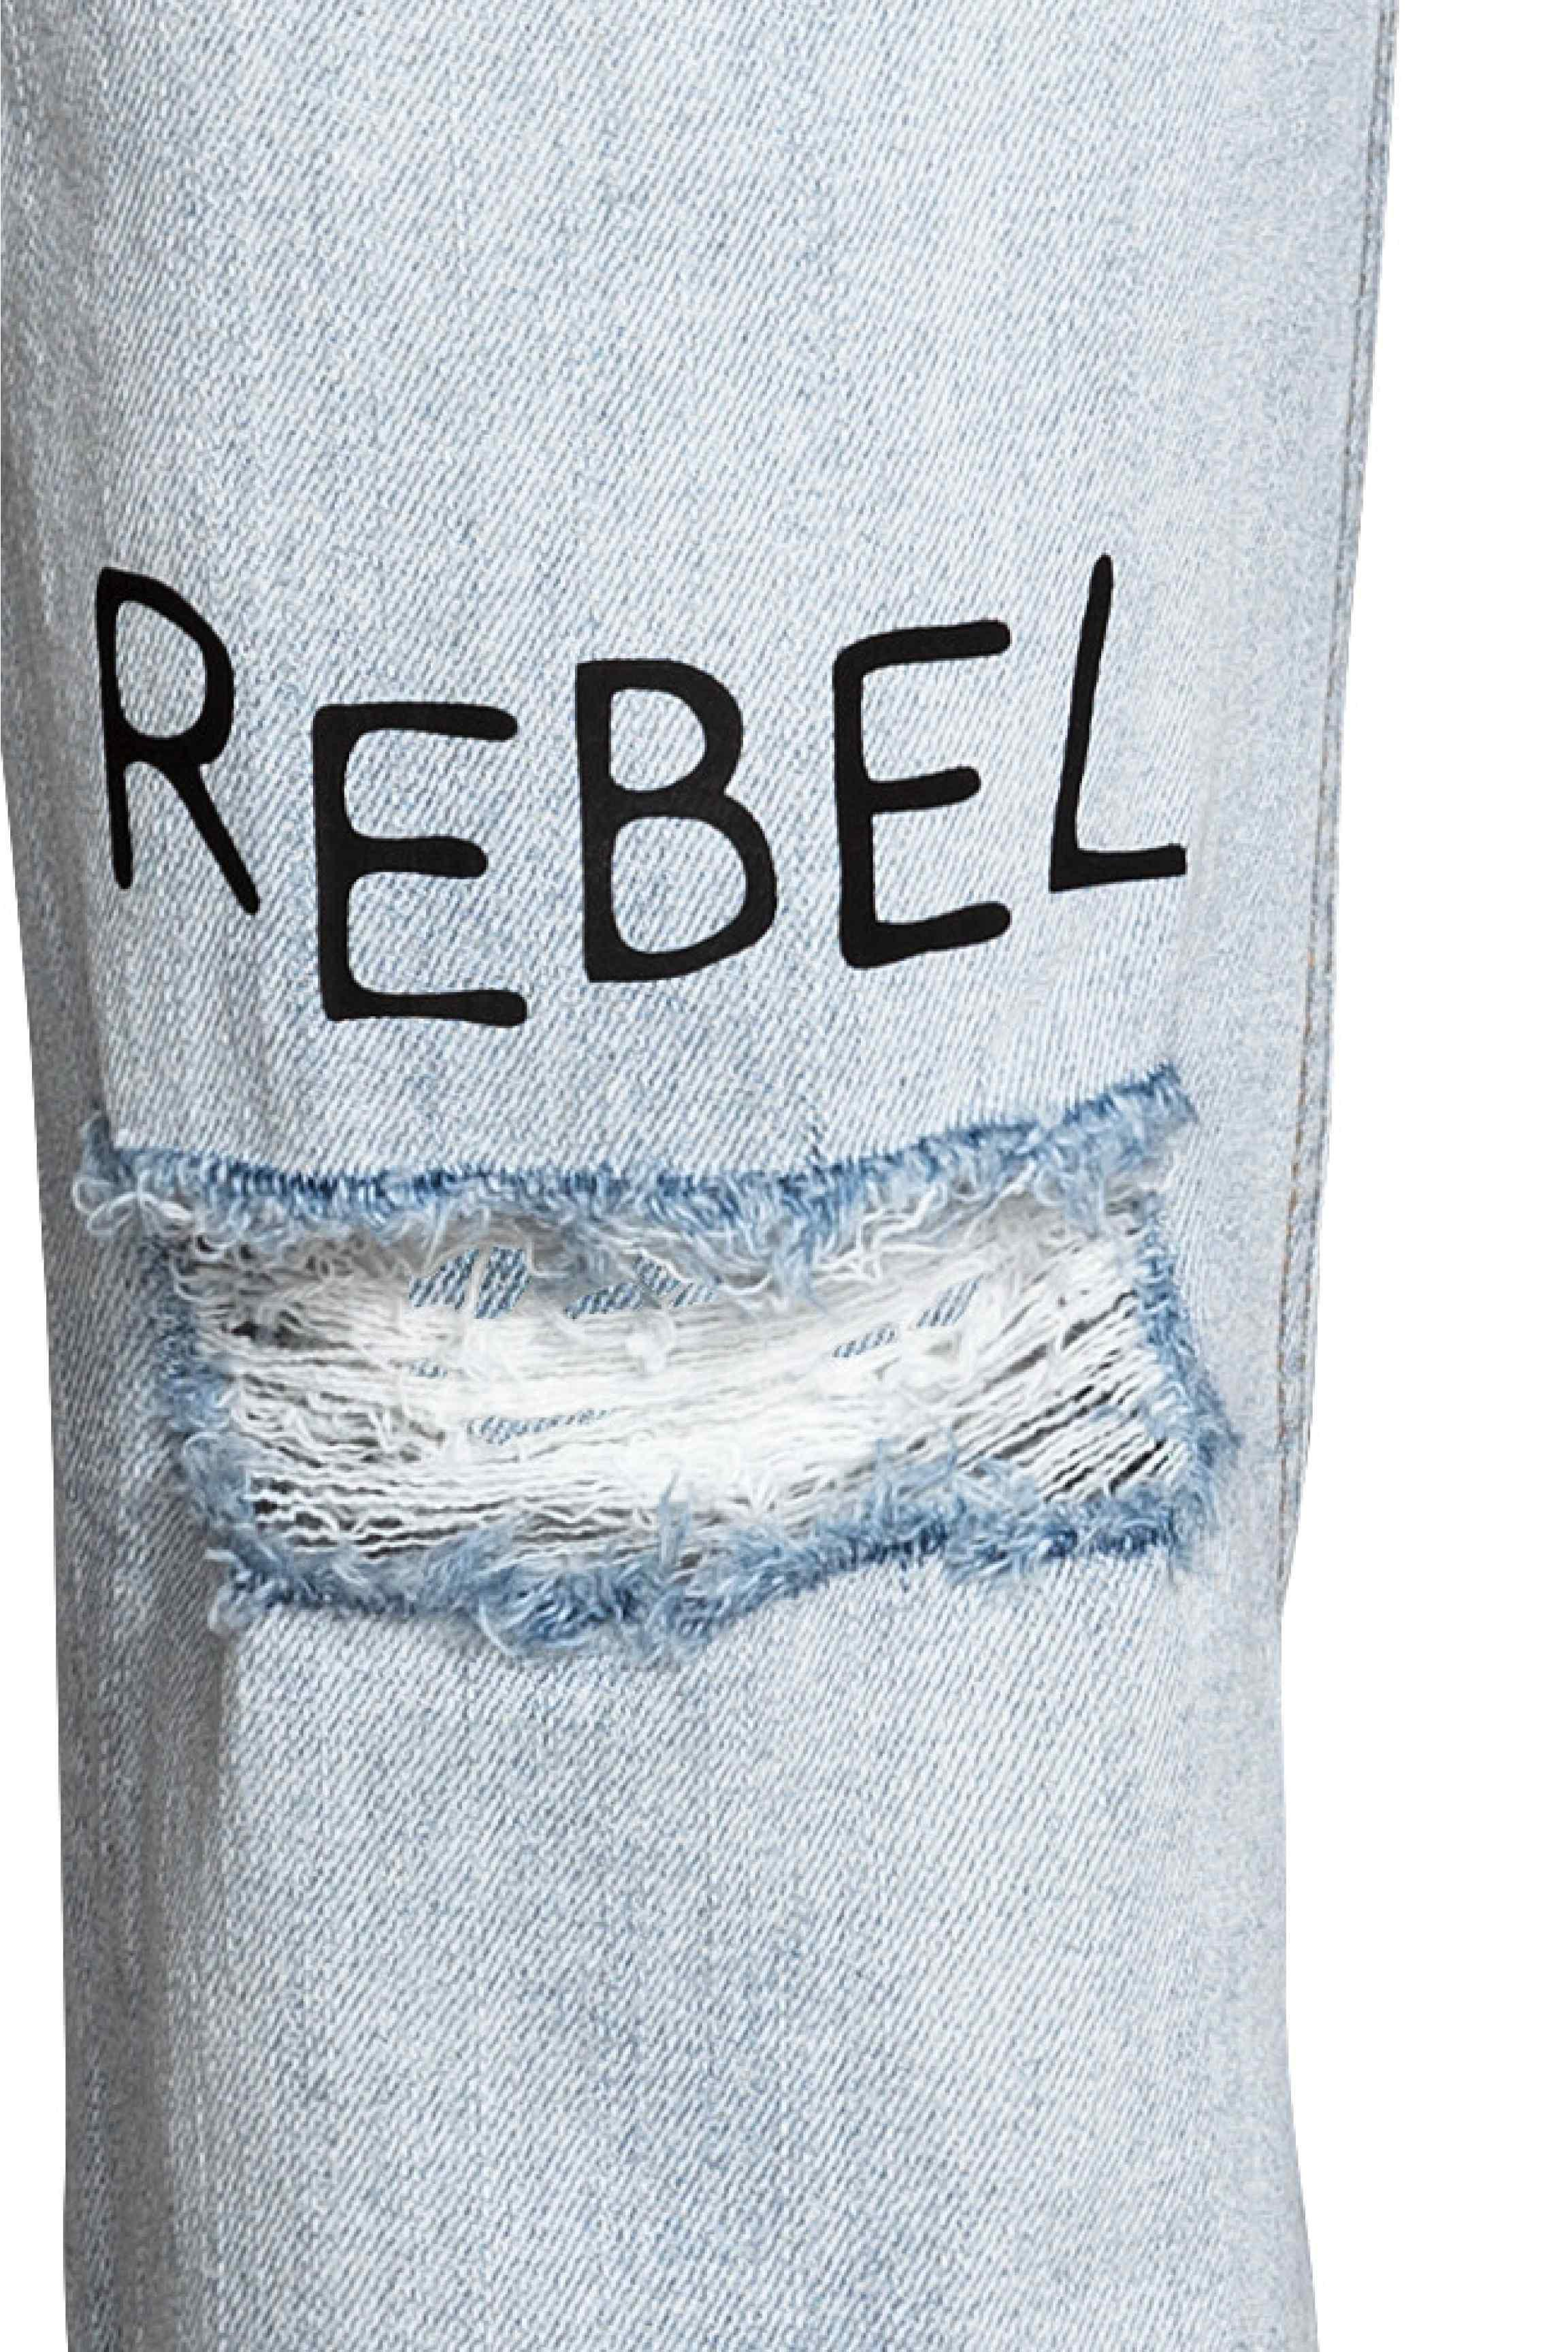 Glass bottle through ripped jeans